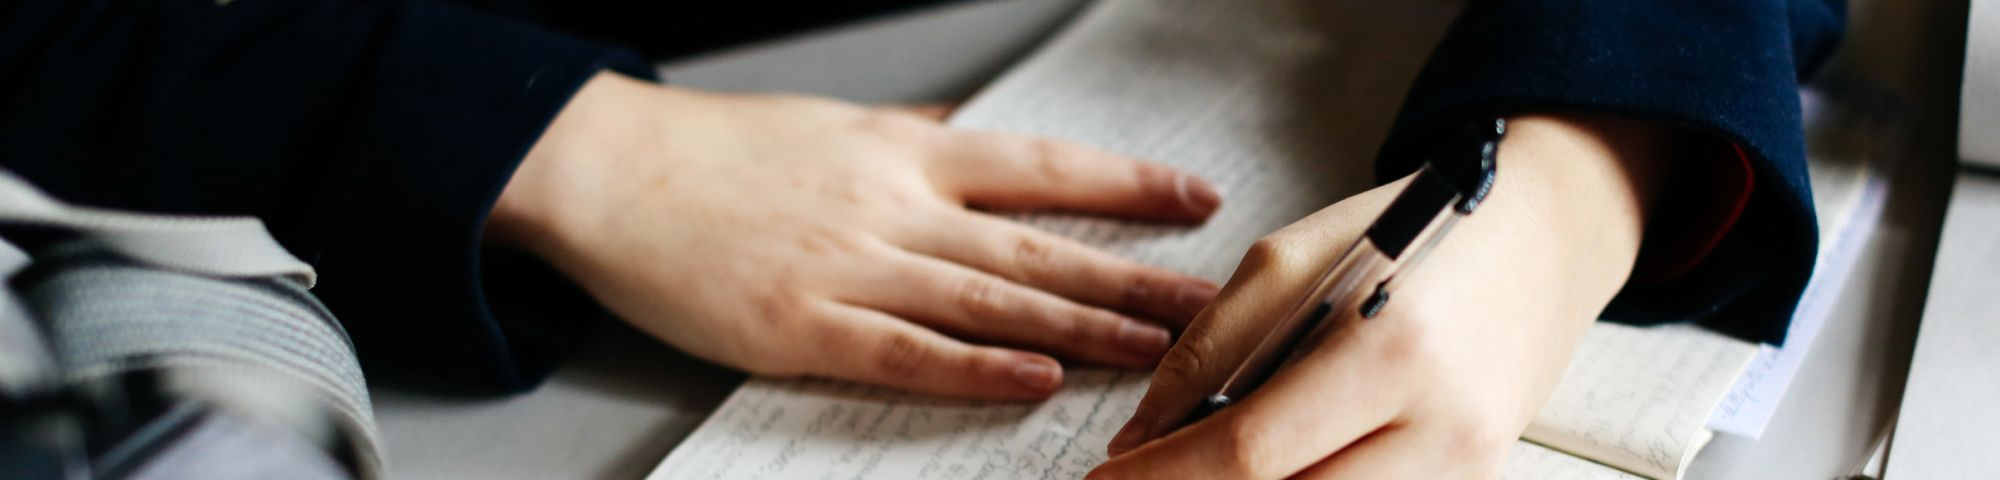 Hands writing in a notebook